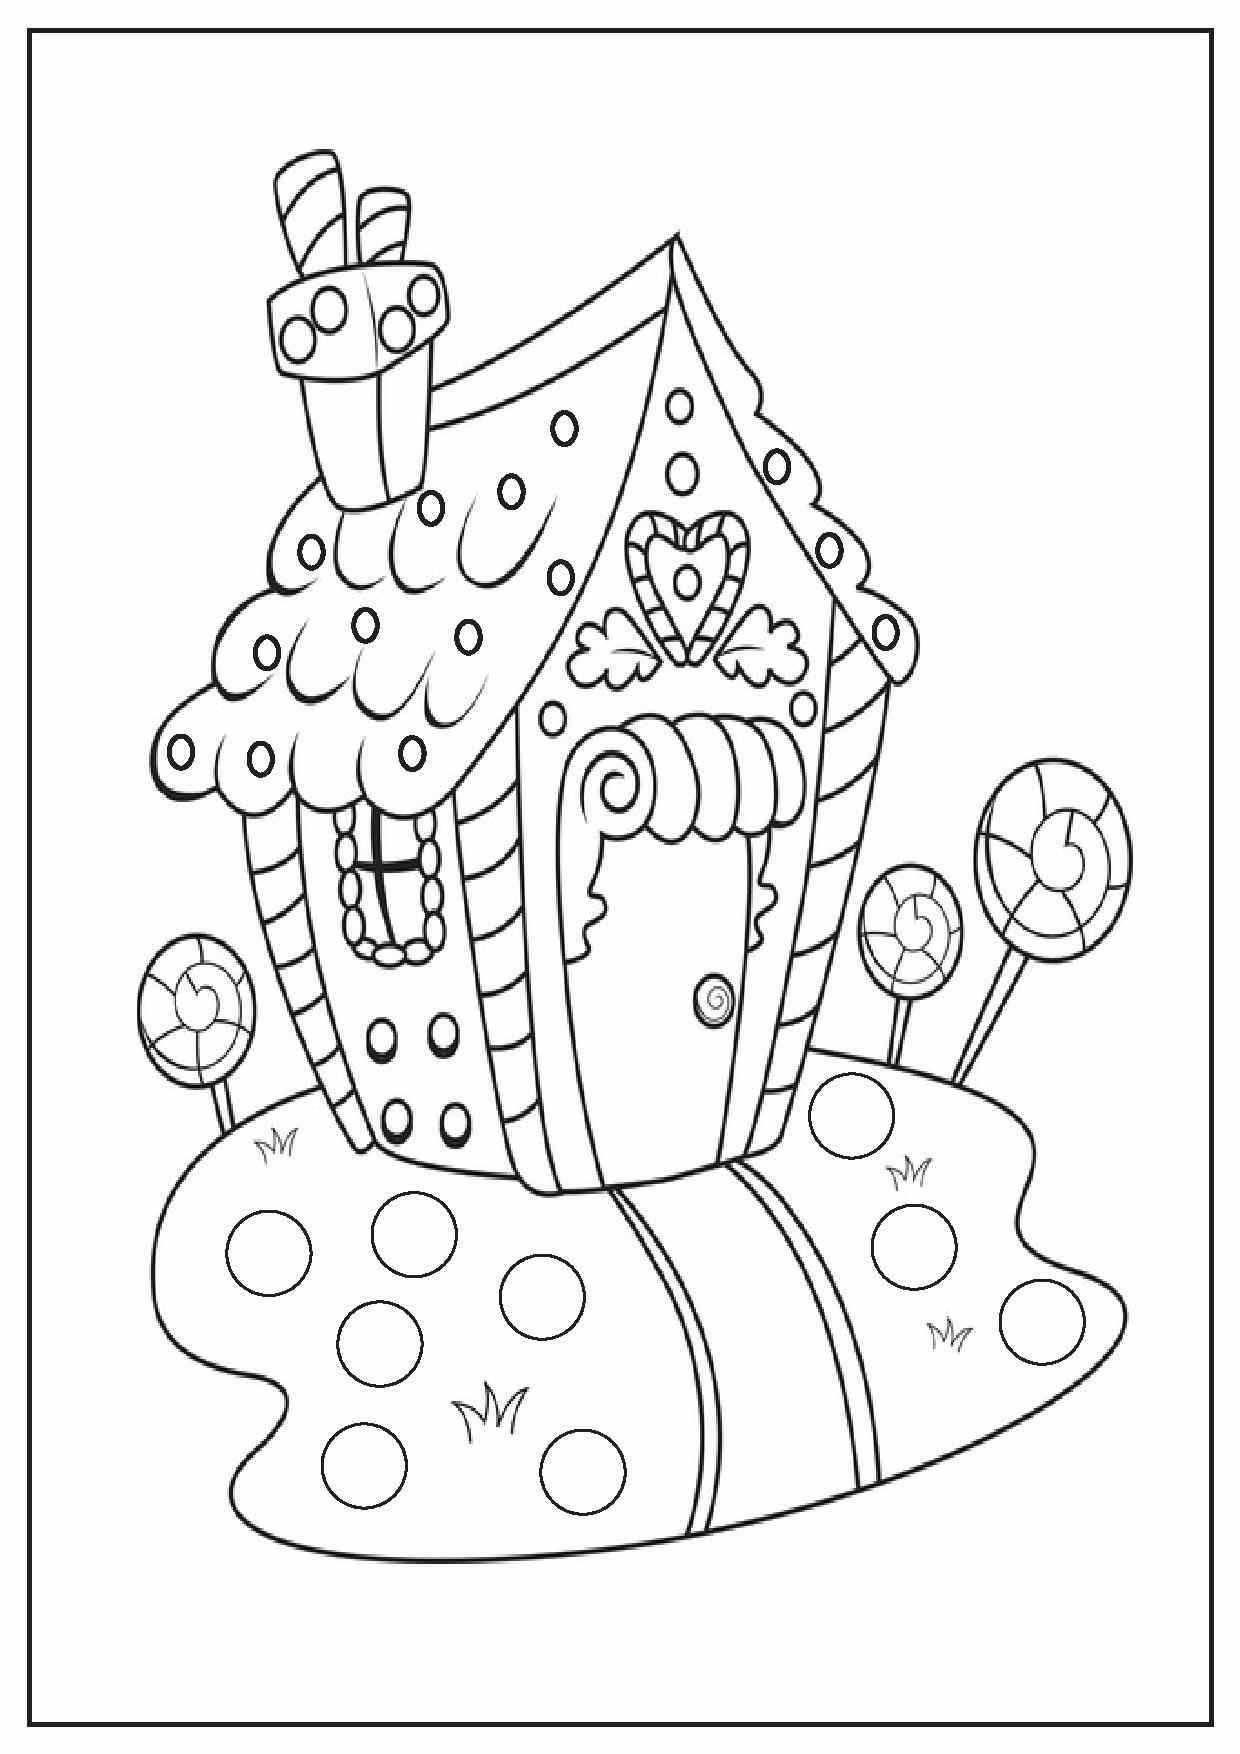 Christmas Coloring Pages For 9 Year Olds With Printable